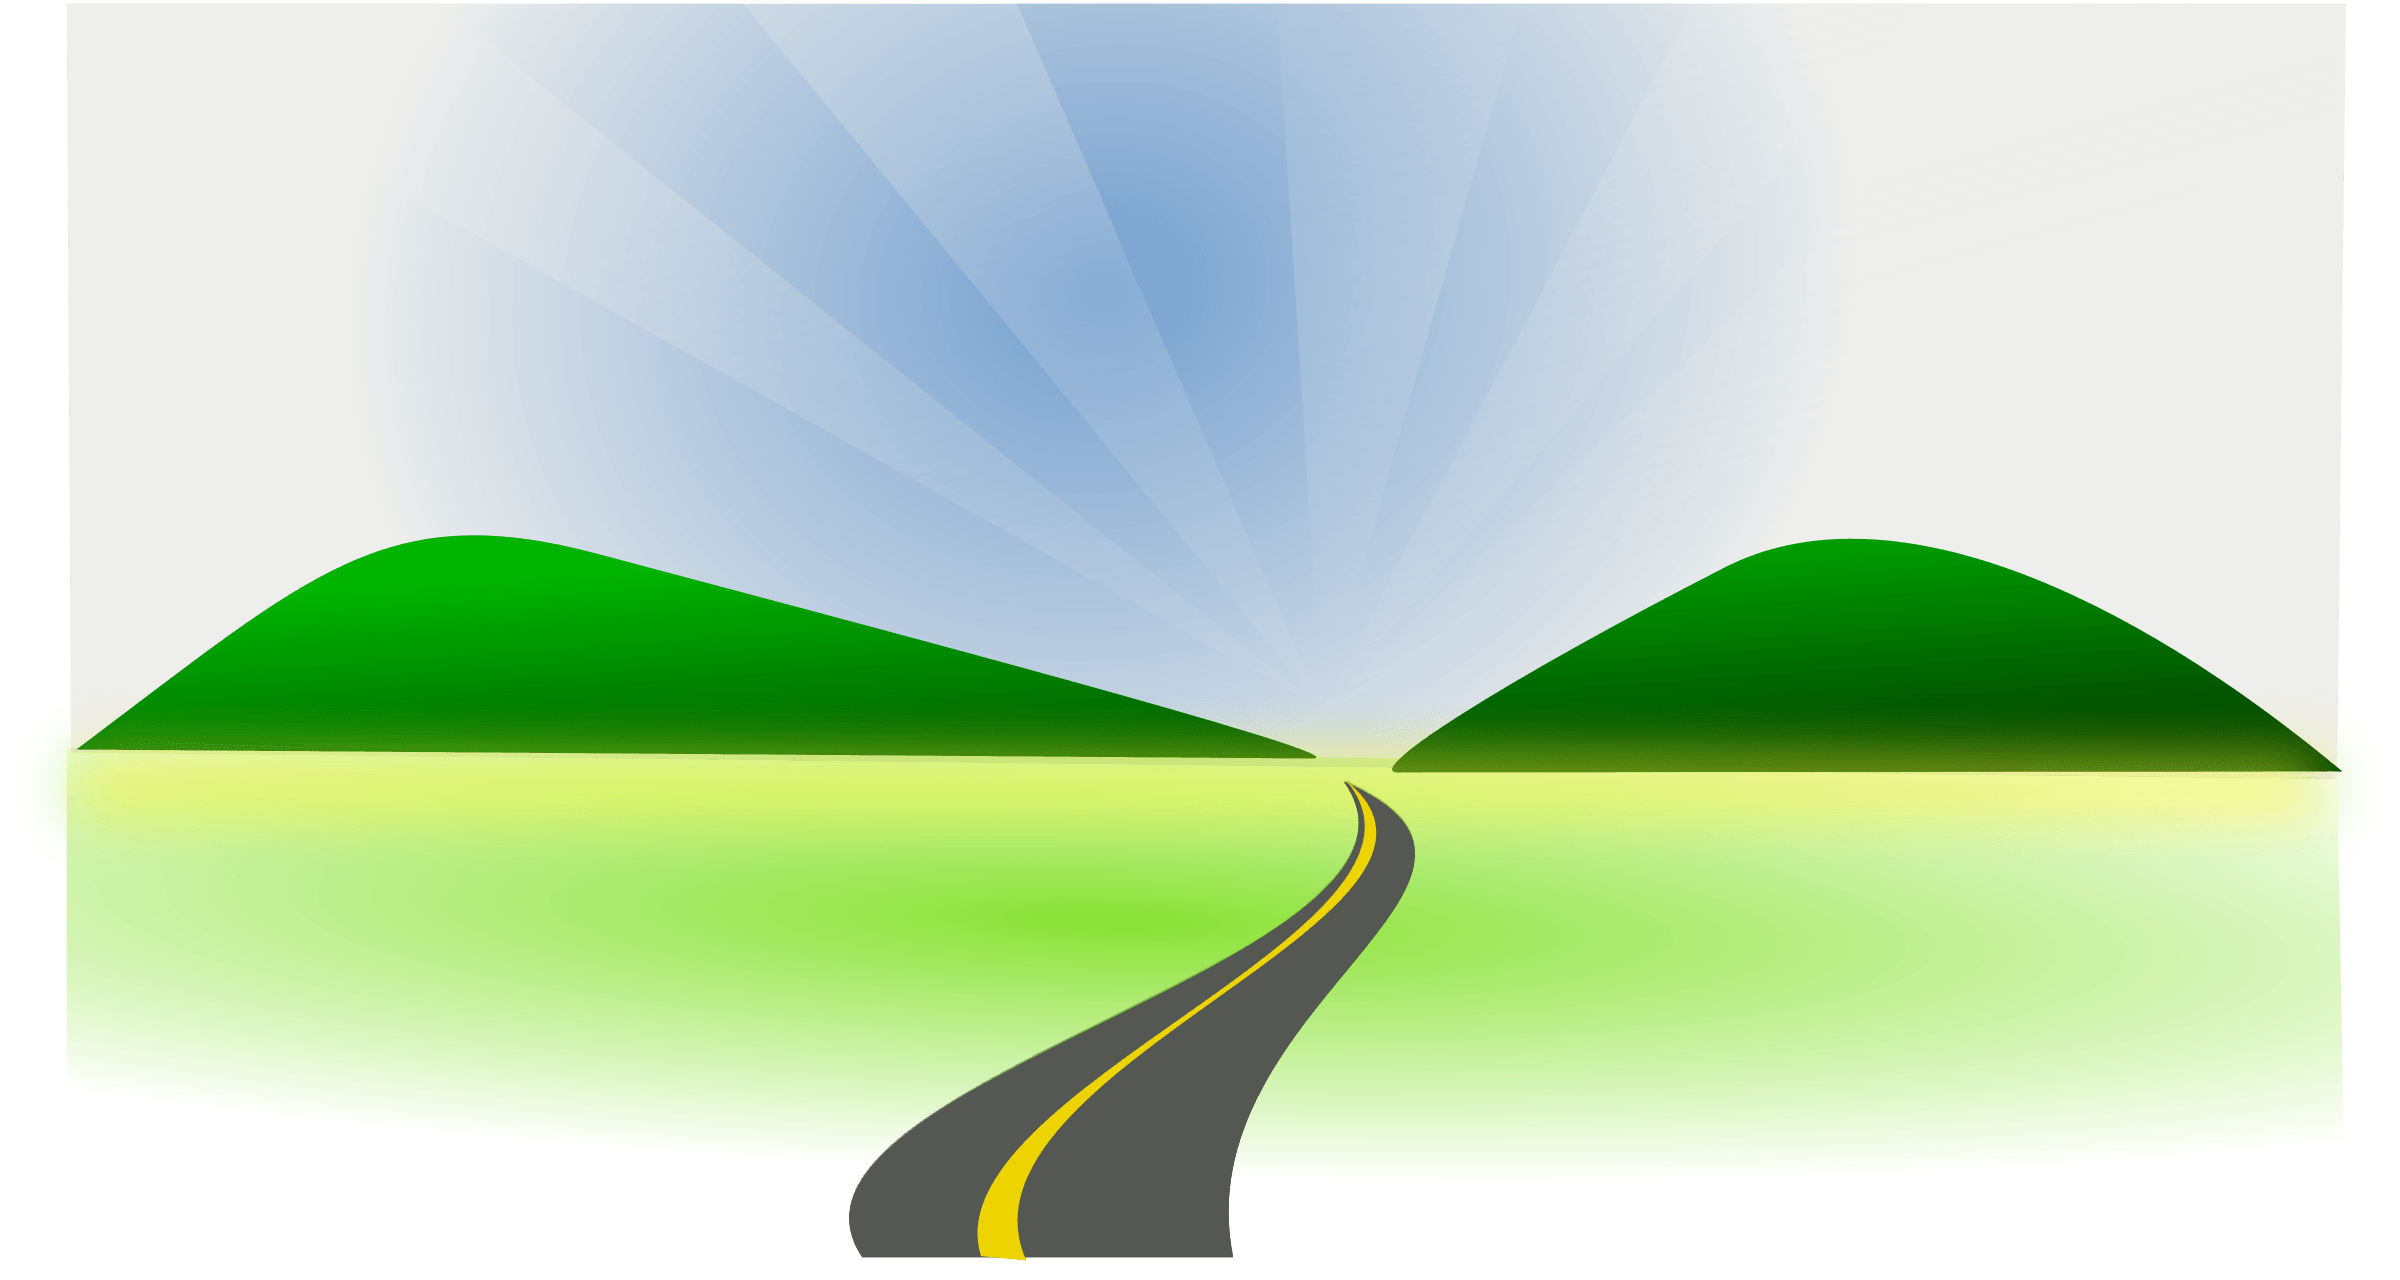 Highway clipart highway exit. Horizontal hanslodge cliparts